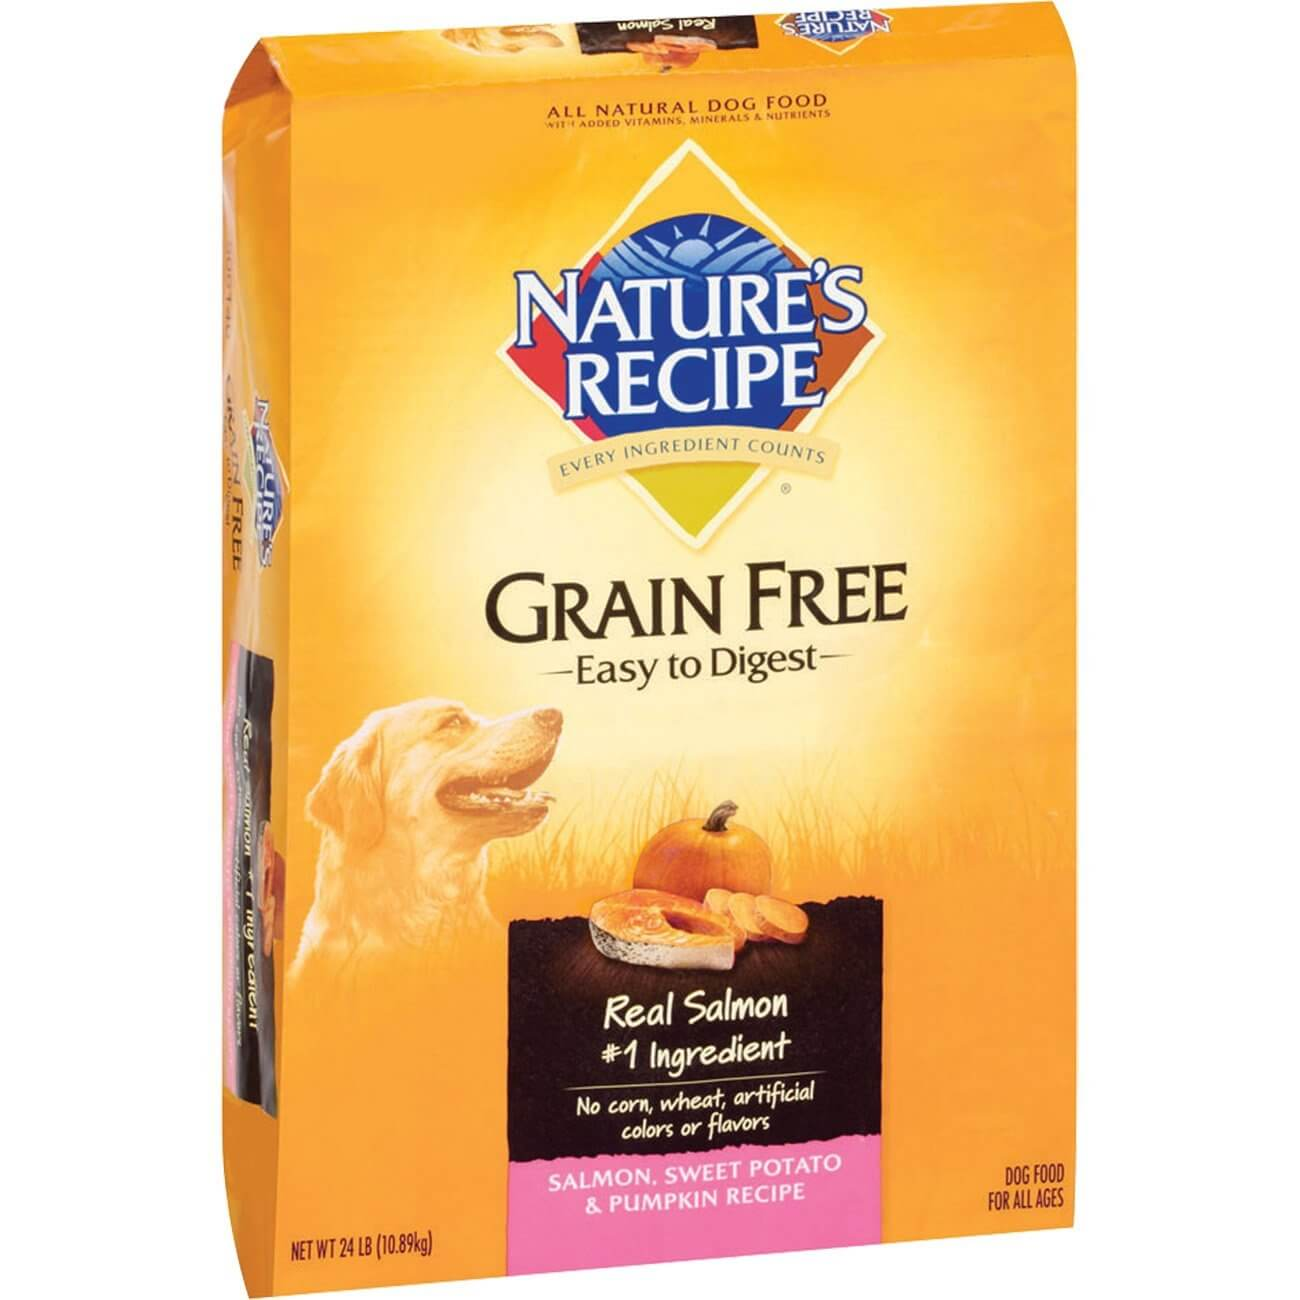 Wild Grain Free Dog Food